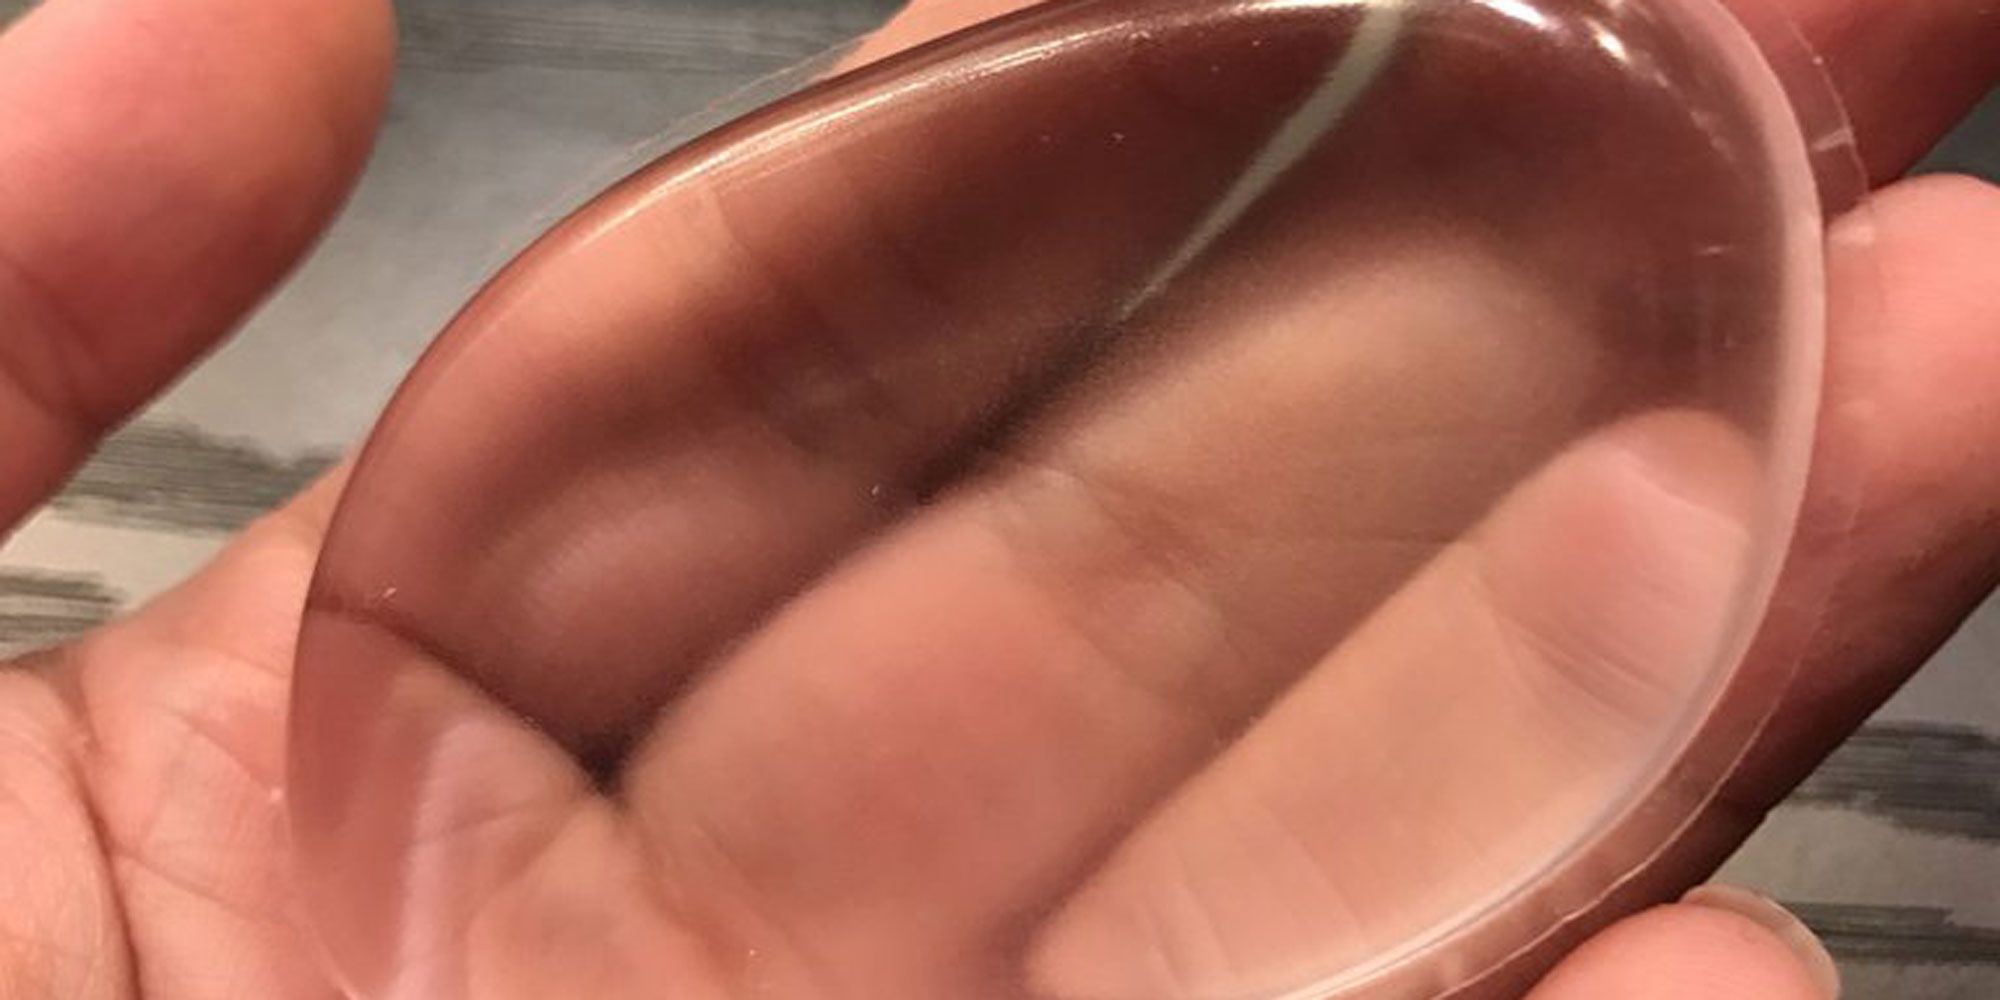 Prepare to Never Waste Any Makeup Again With This Clear Makeup Sponge